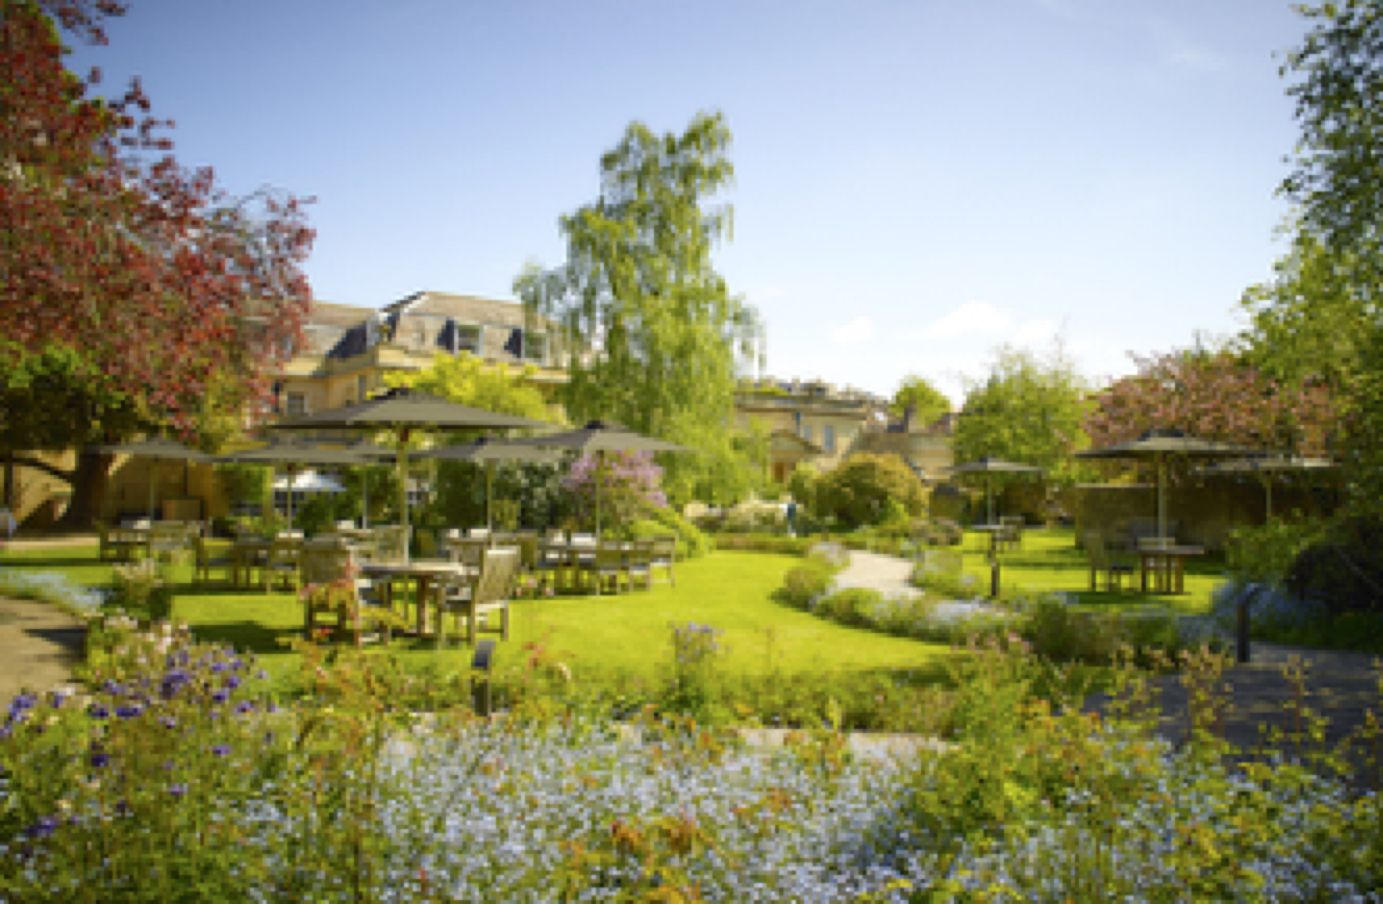 The Royal Crescent Hotel & Spa Gardens